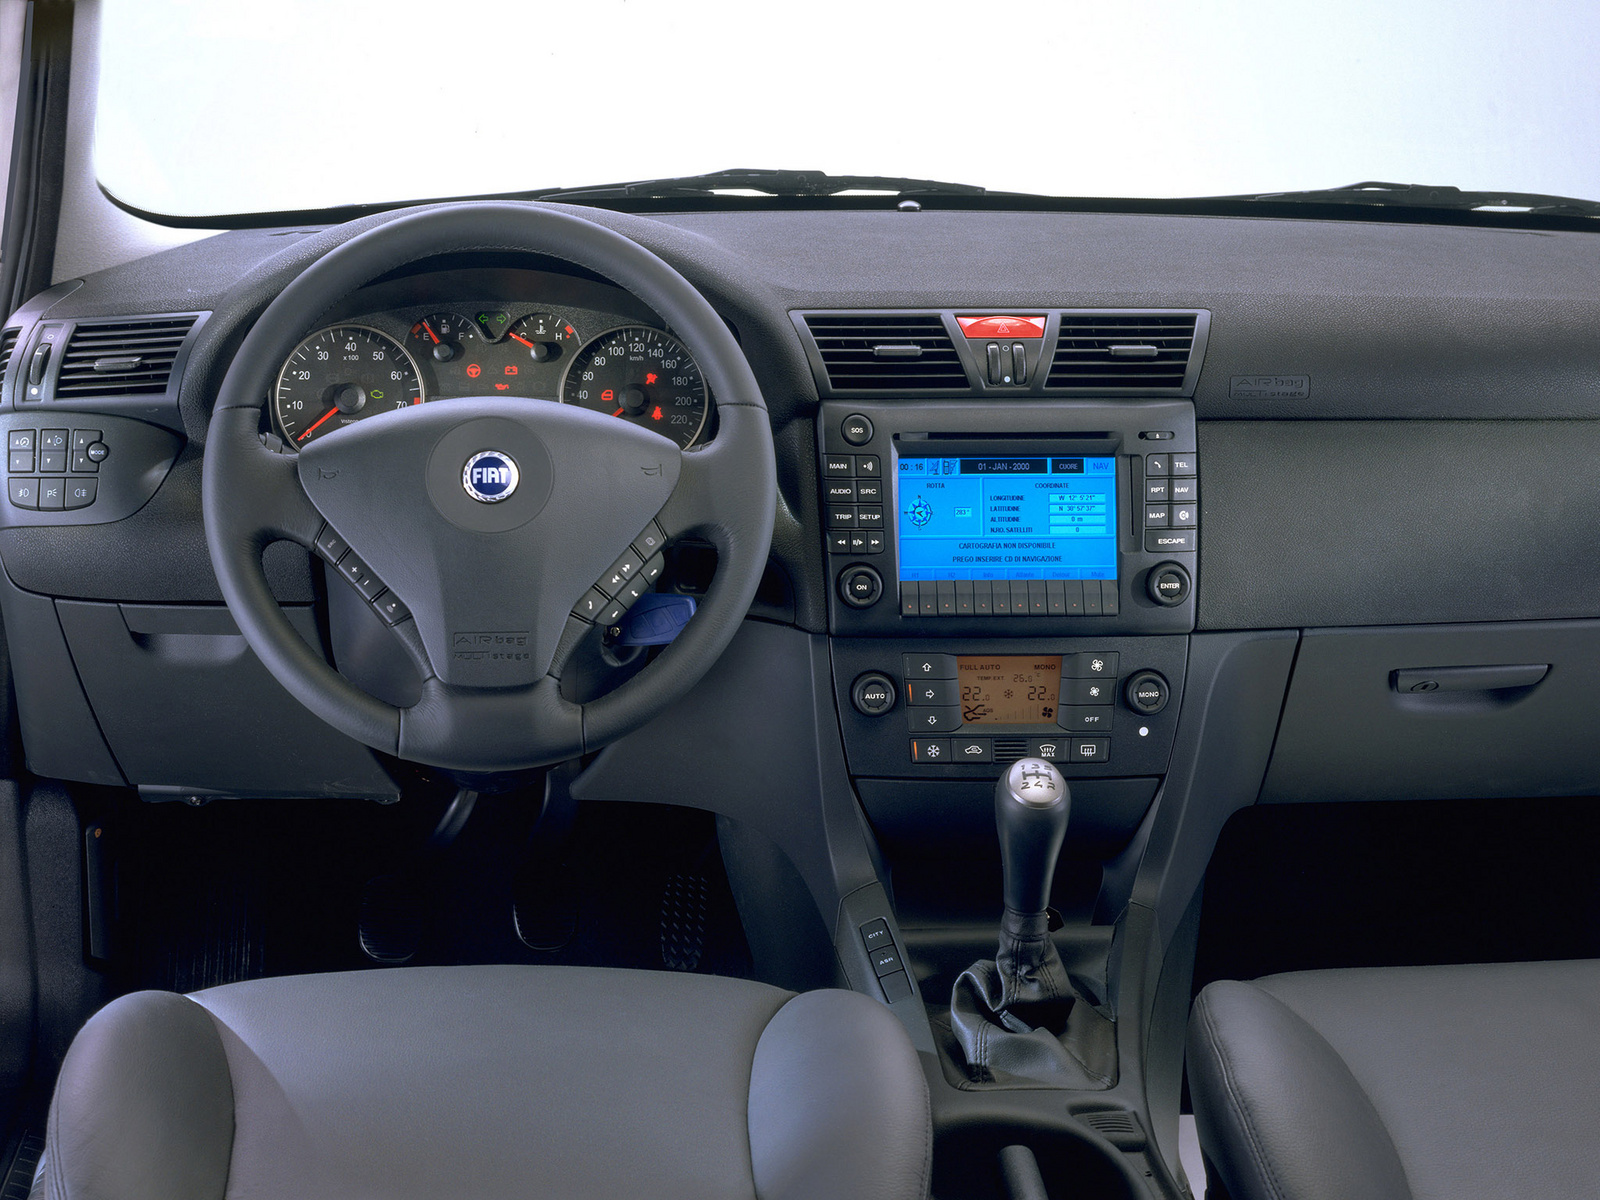 2001 Fiat Stilo Interior Pictures Cargurus